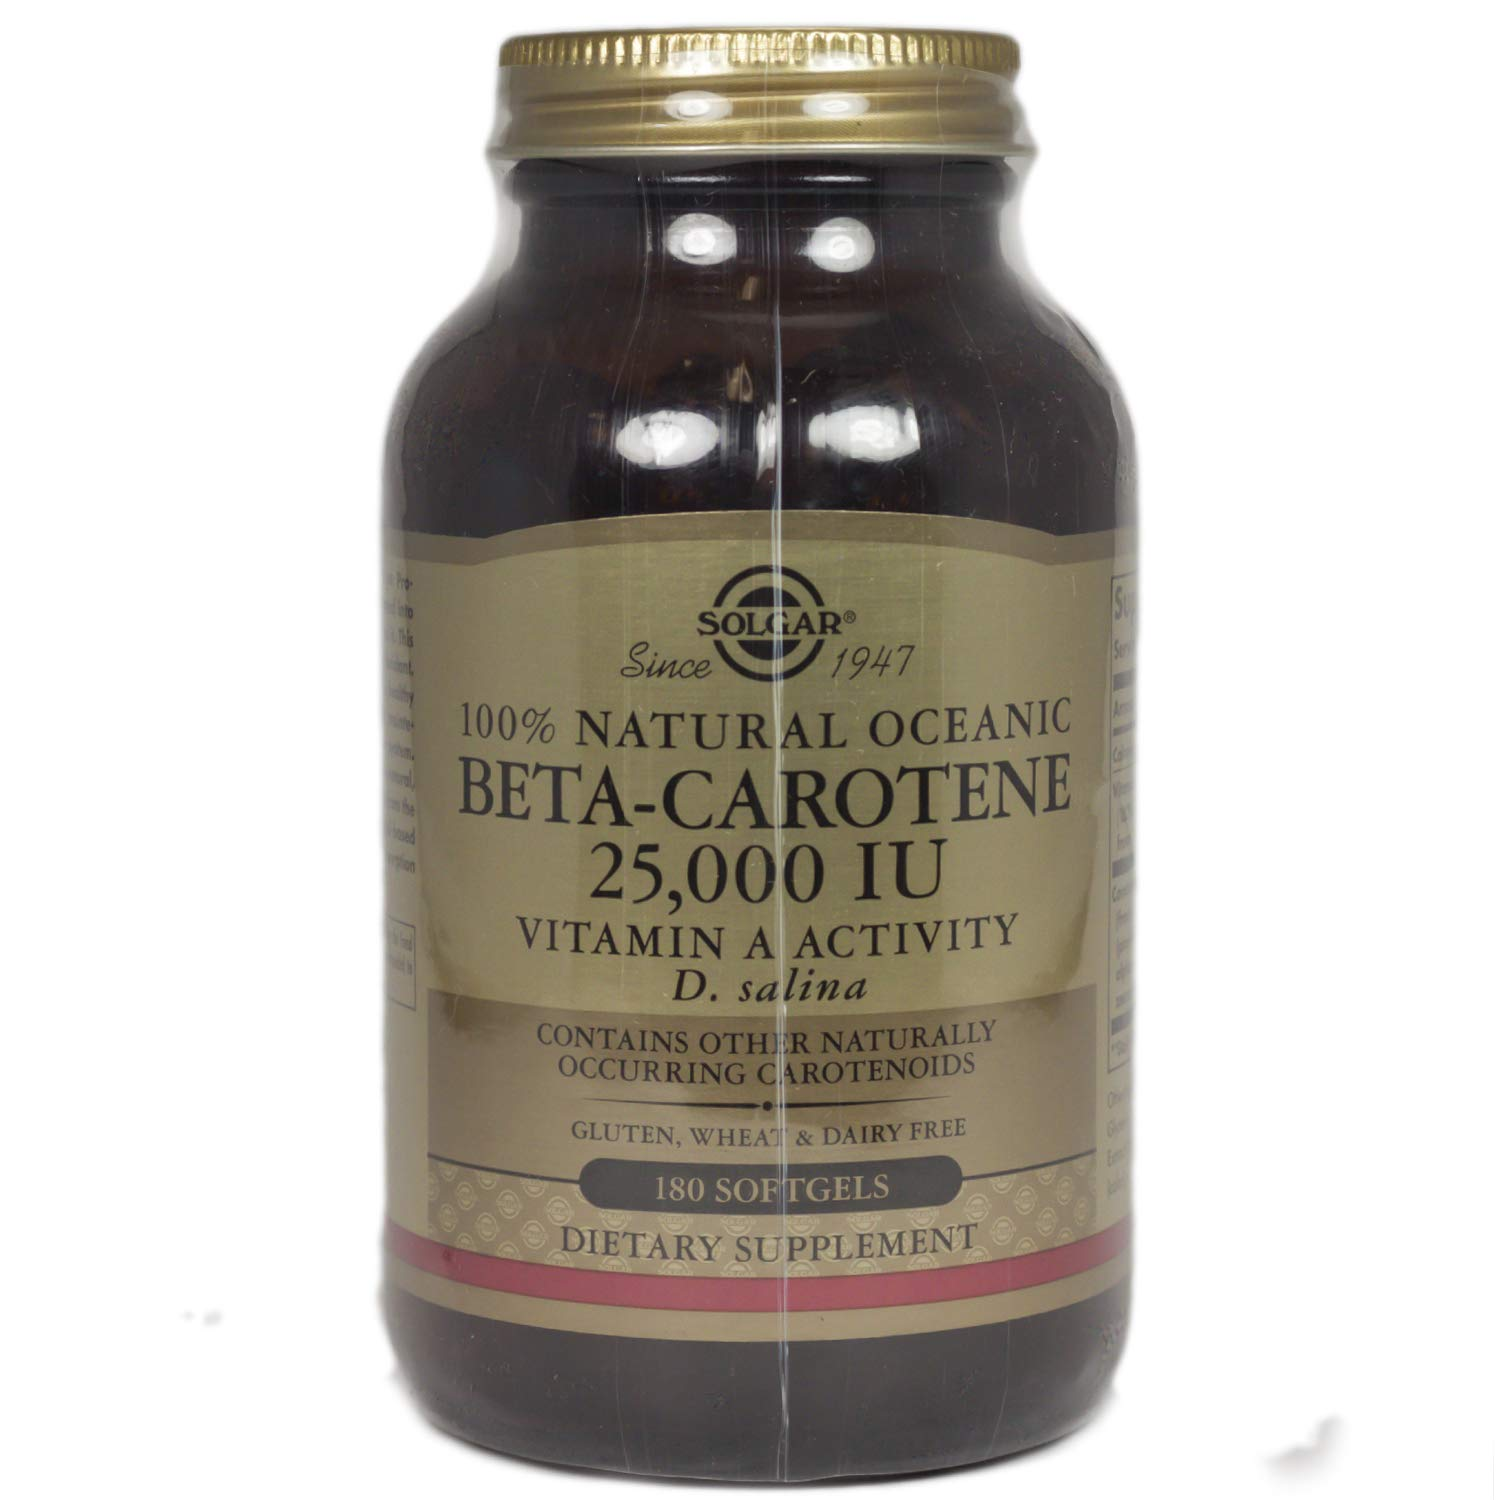 Solgar Oceanic Beta Carotene 25,000 IU Softgels, 180 Count